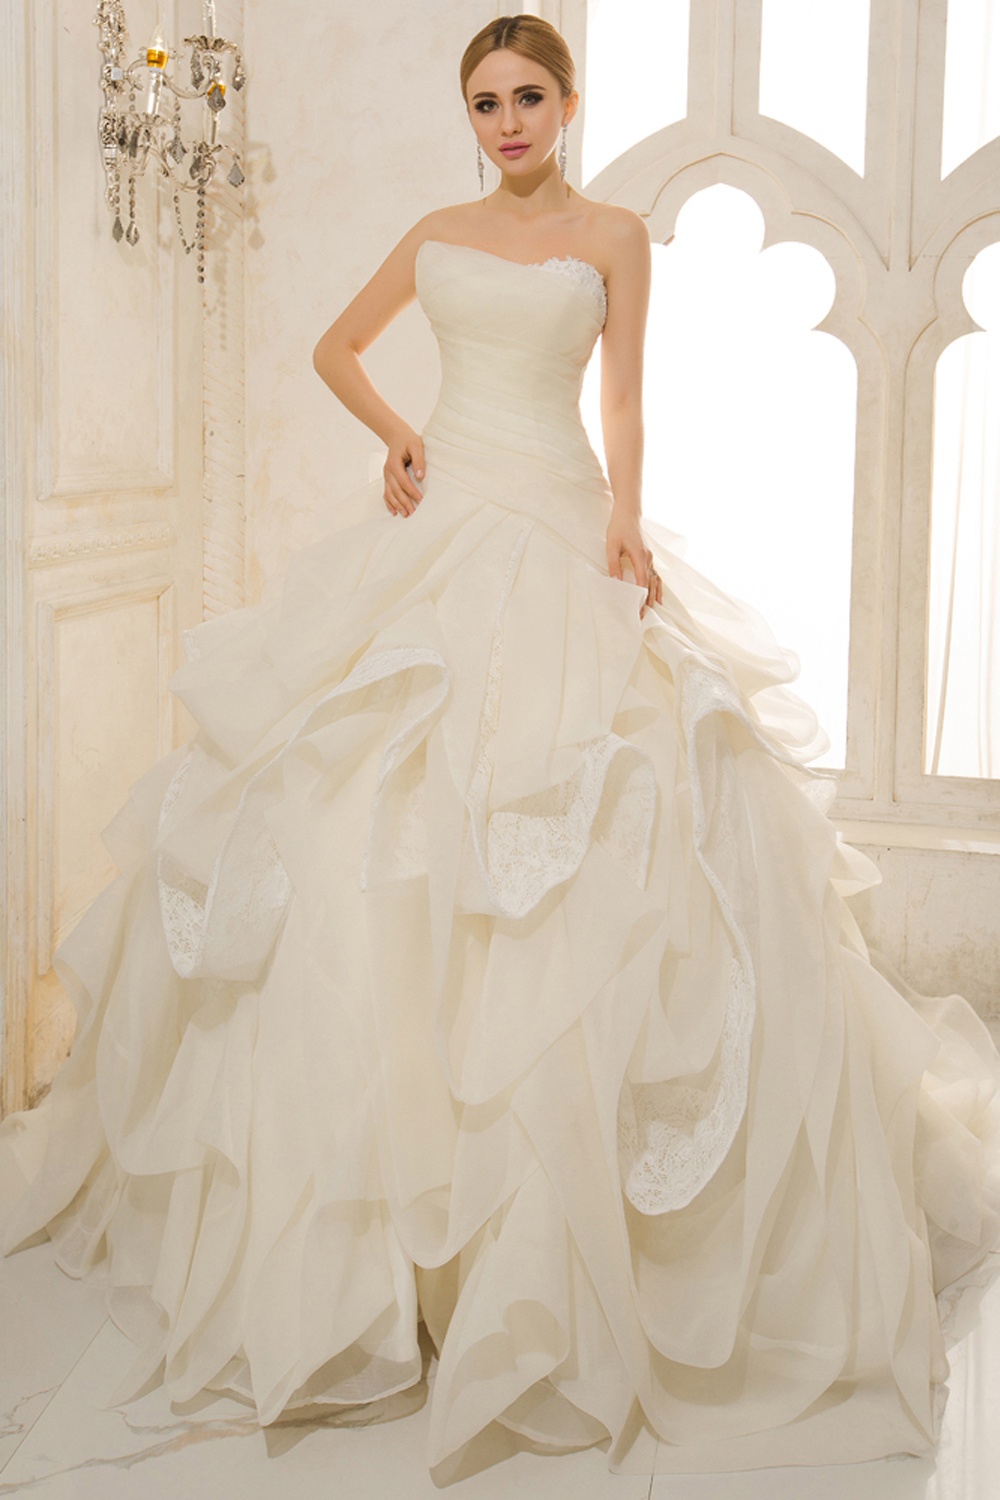 A-Line/Sheath Strapless Court Train Tulle Wedding Dresses With Pleats